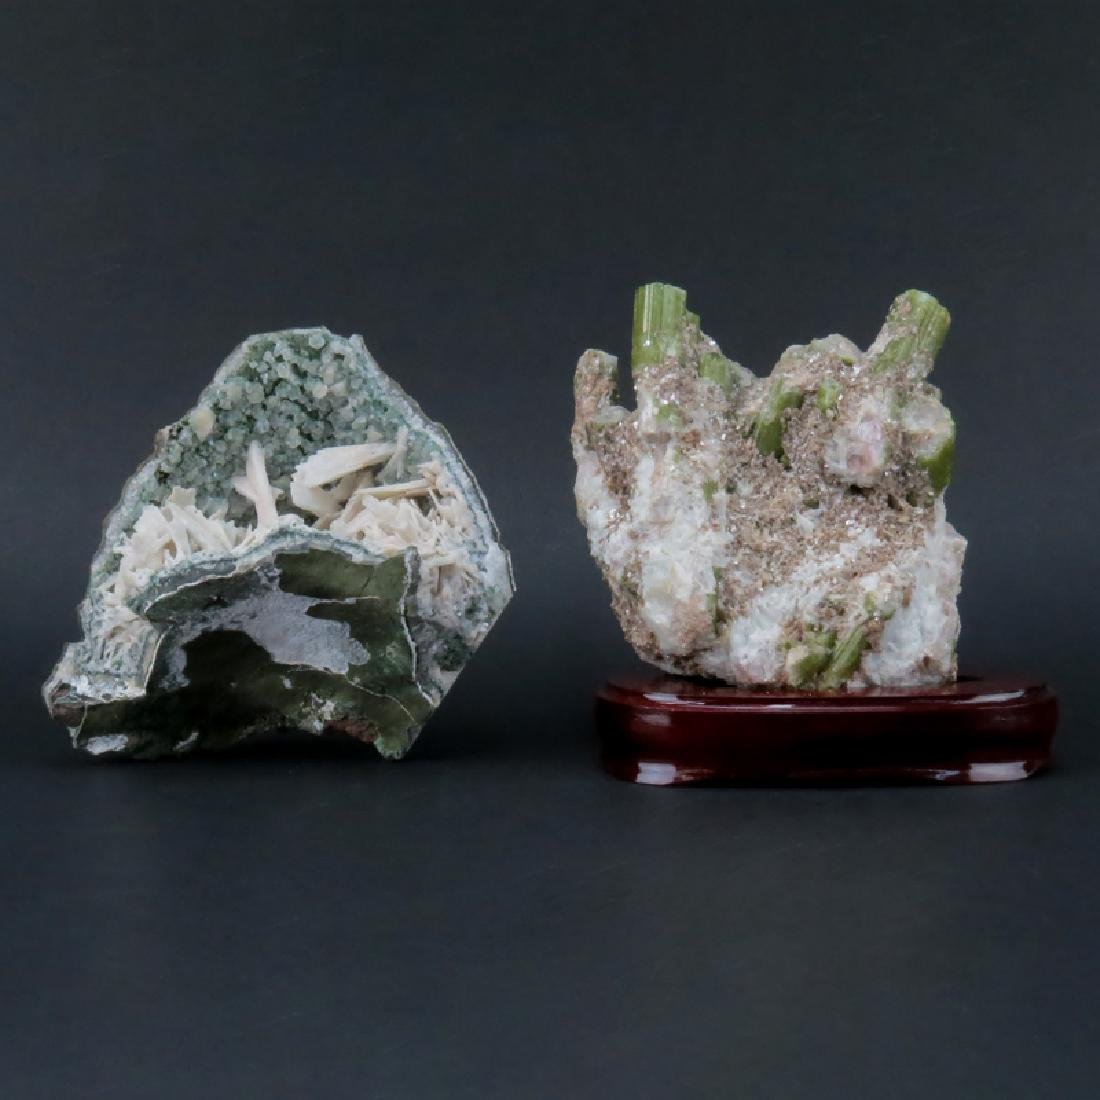 Grouping of Two (2) Gemstone Mineral Specimens. One has